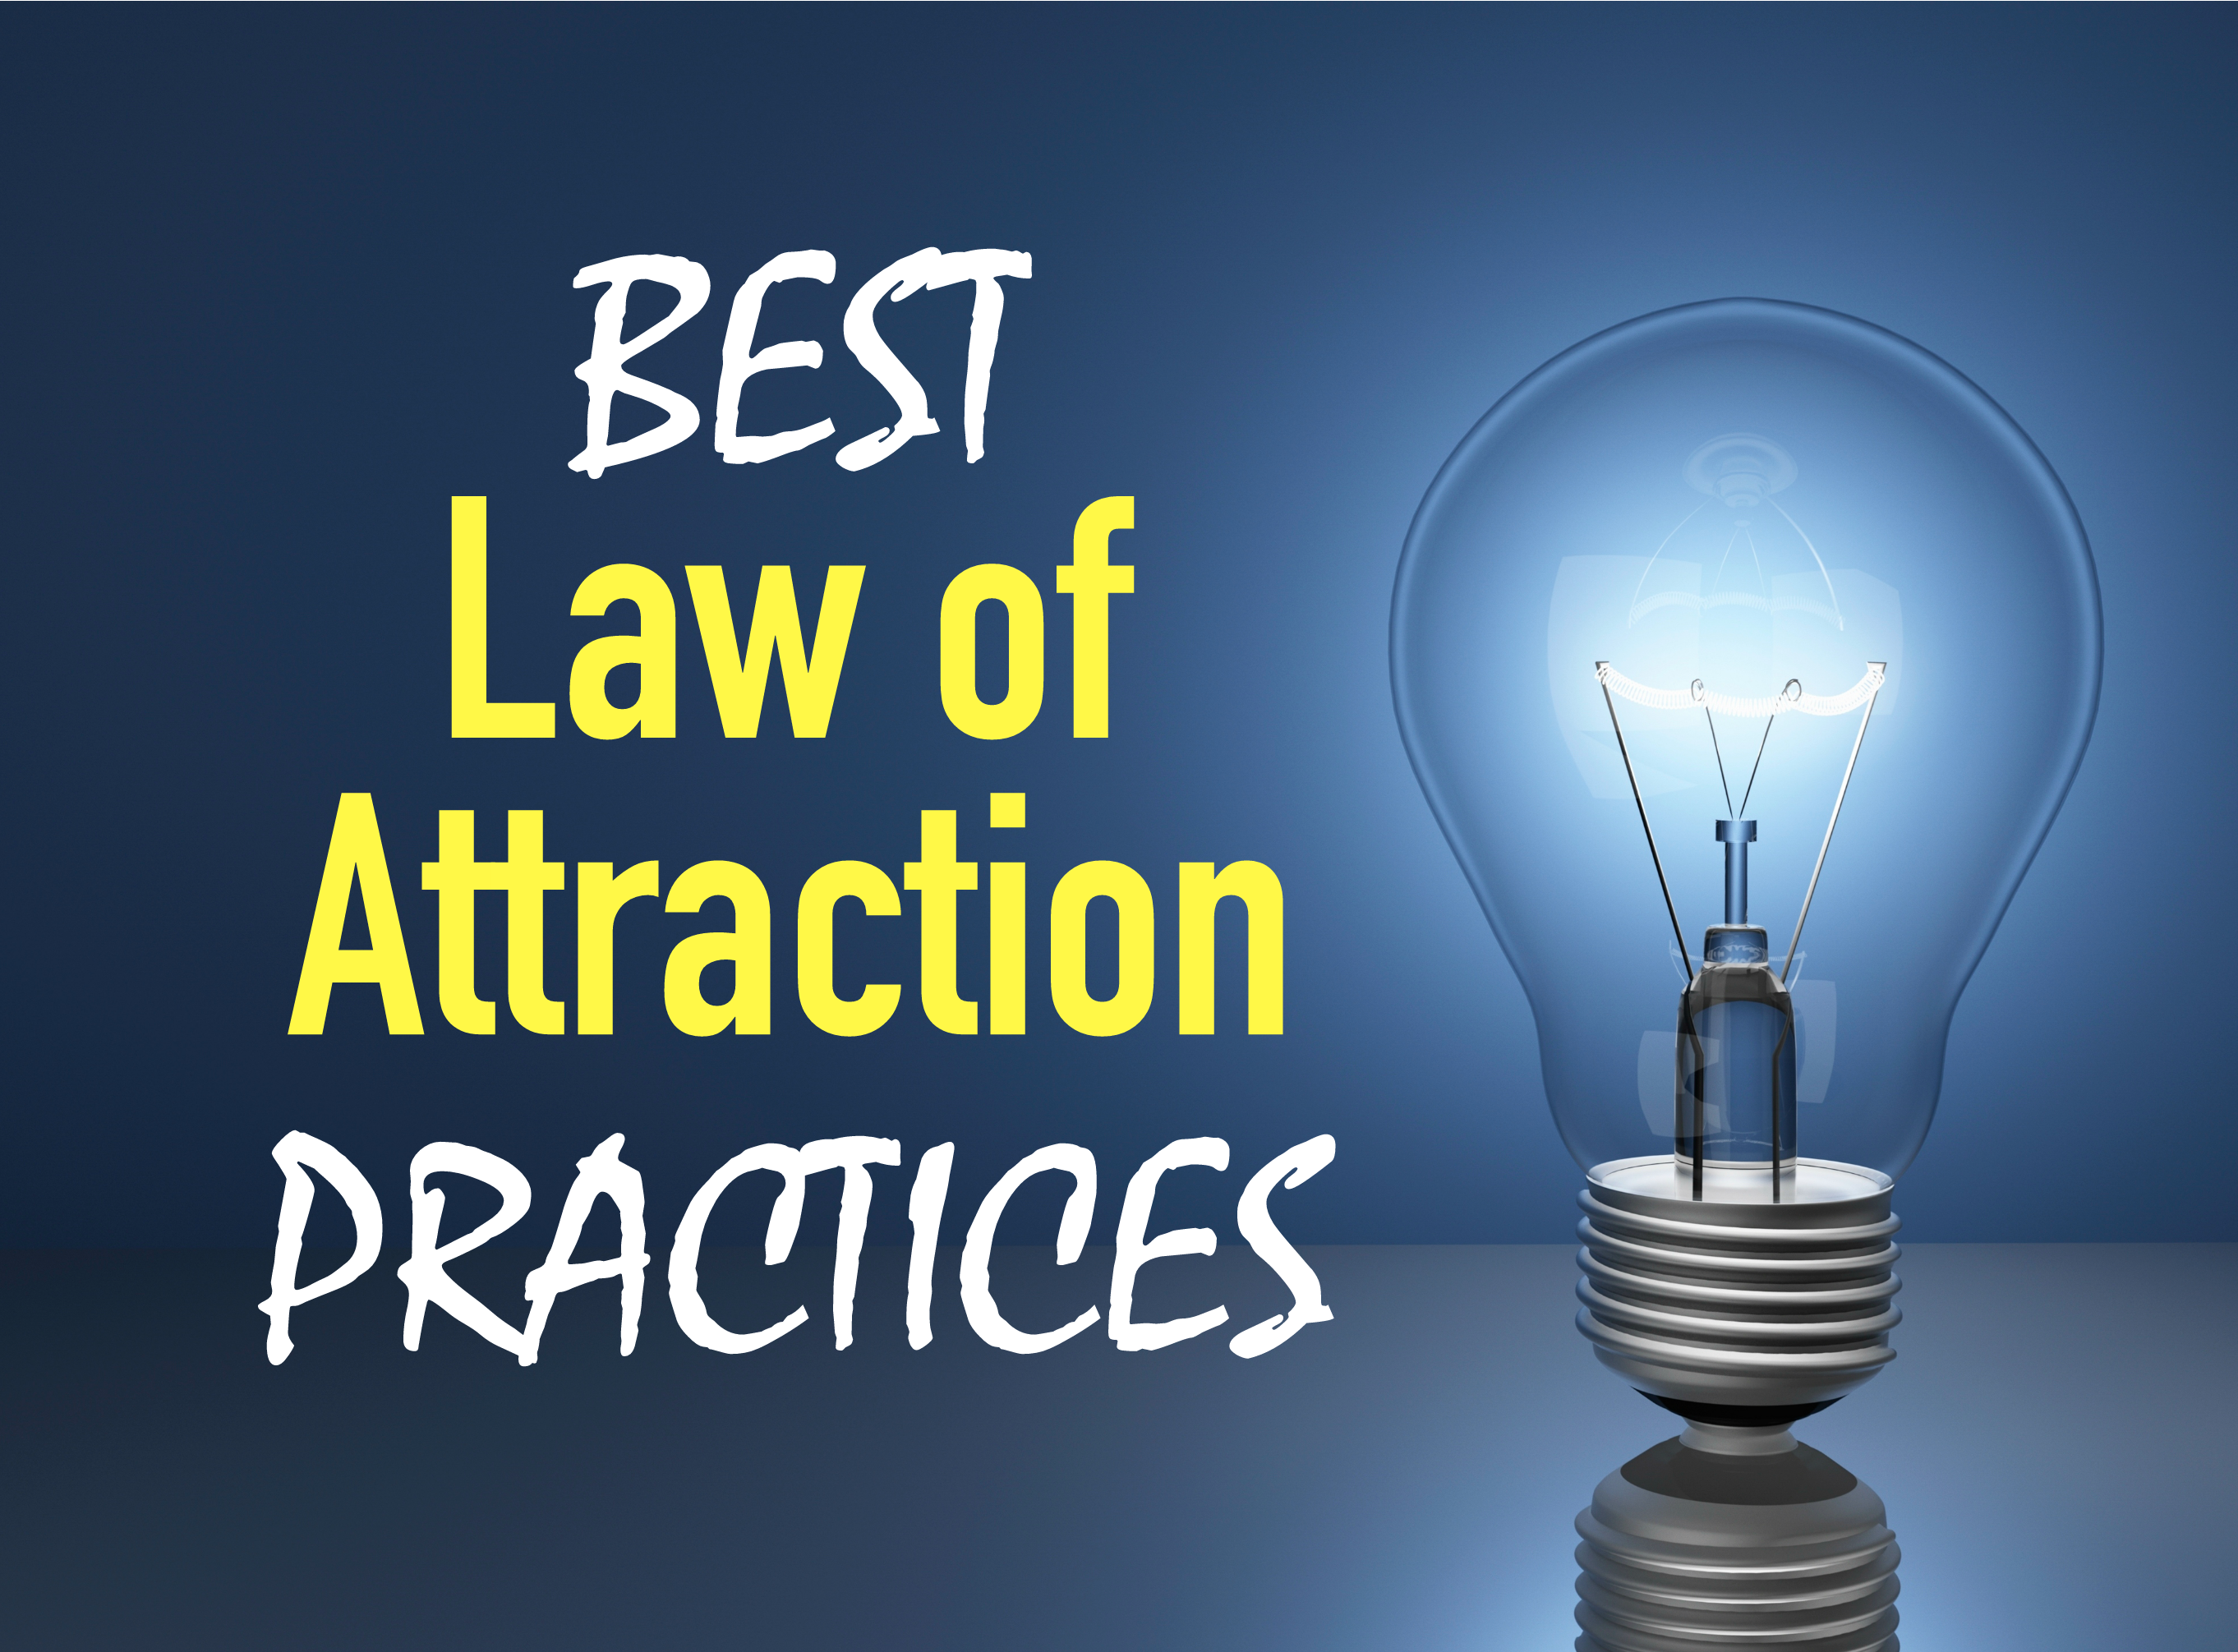 Law Of Attraction Quotes Best Practices For Conscious Creation  Good Vibe Blog